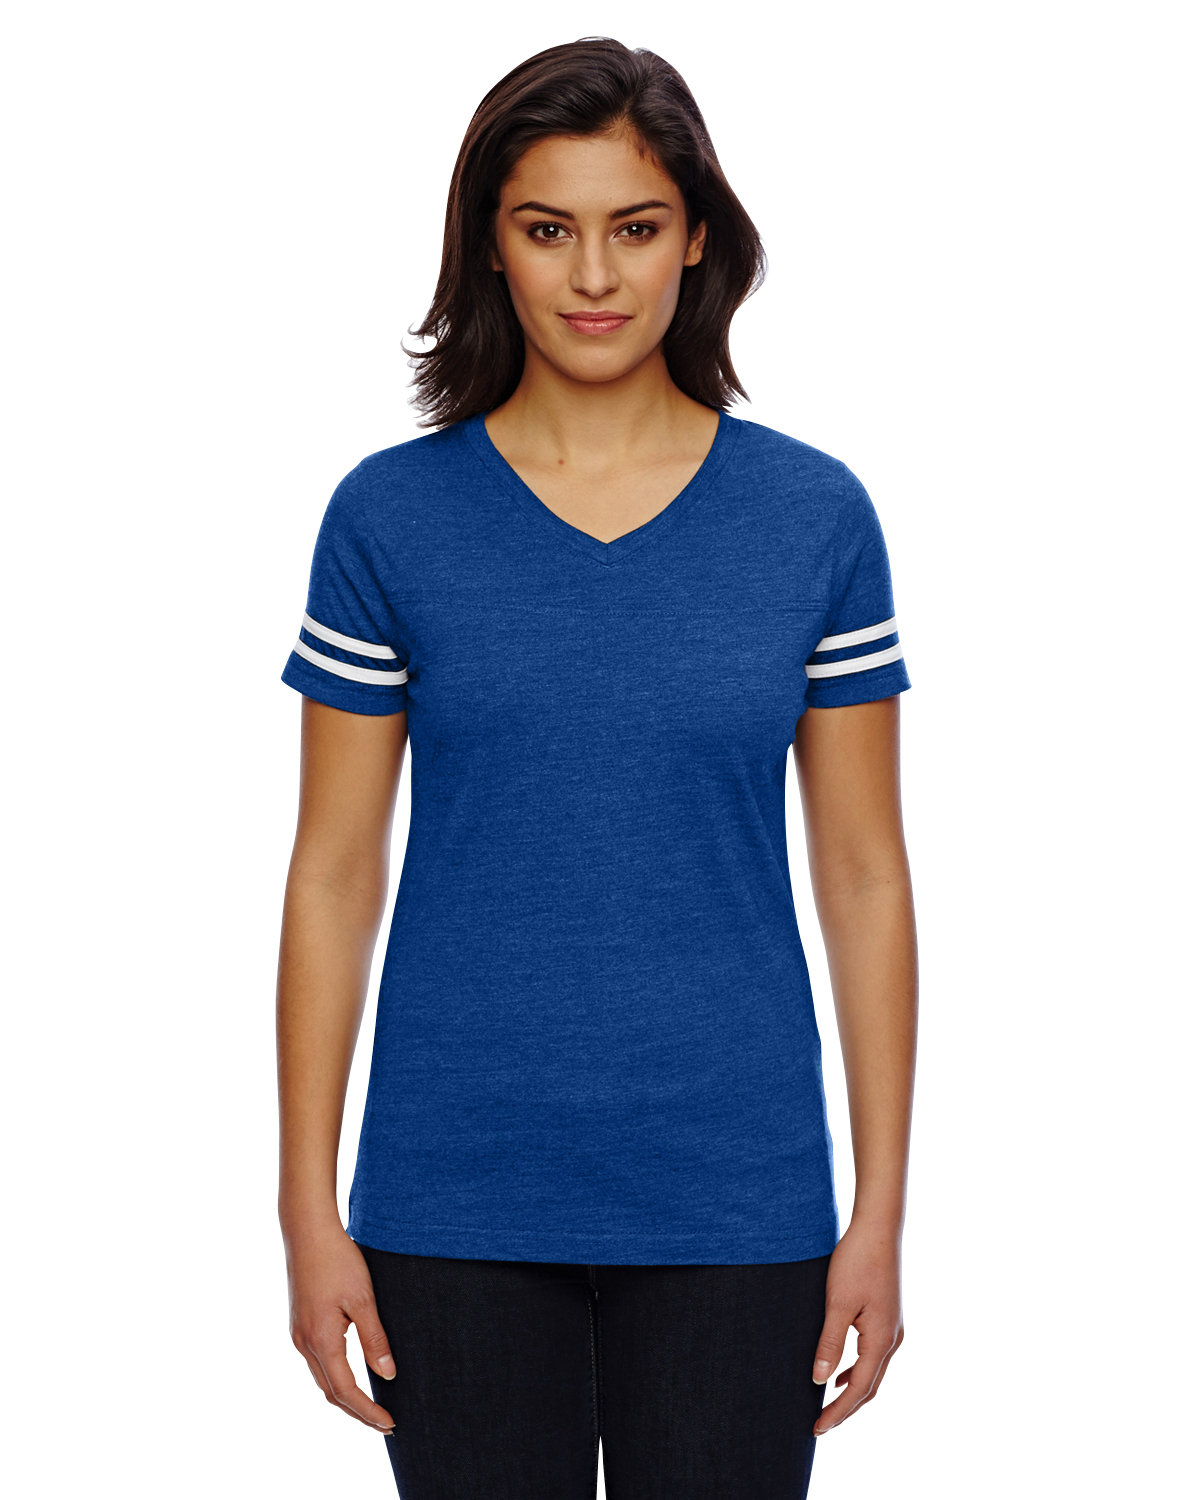 LAT Ladies' Football T-Shirt VN ROYAL/ BD WHT